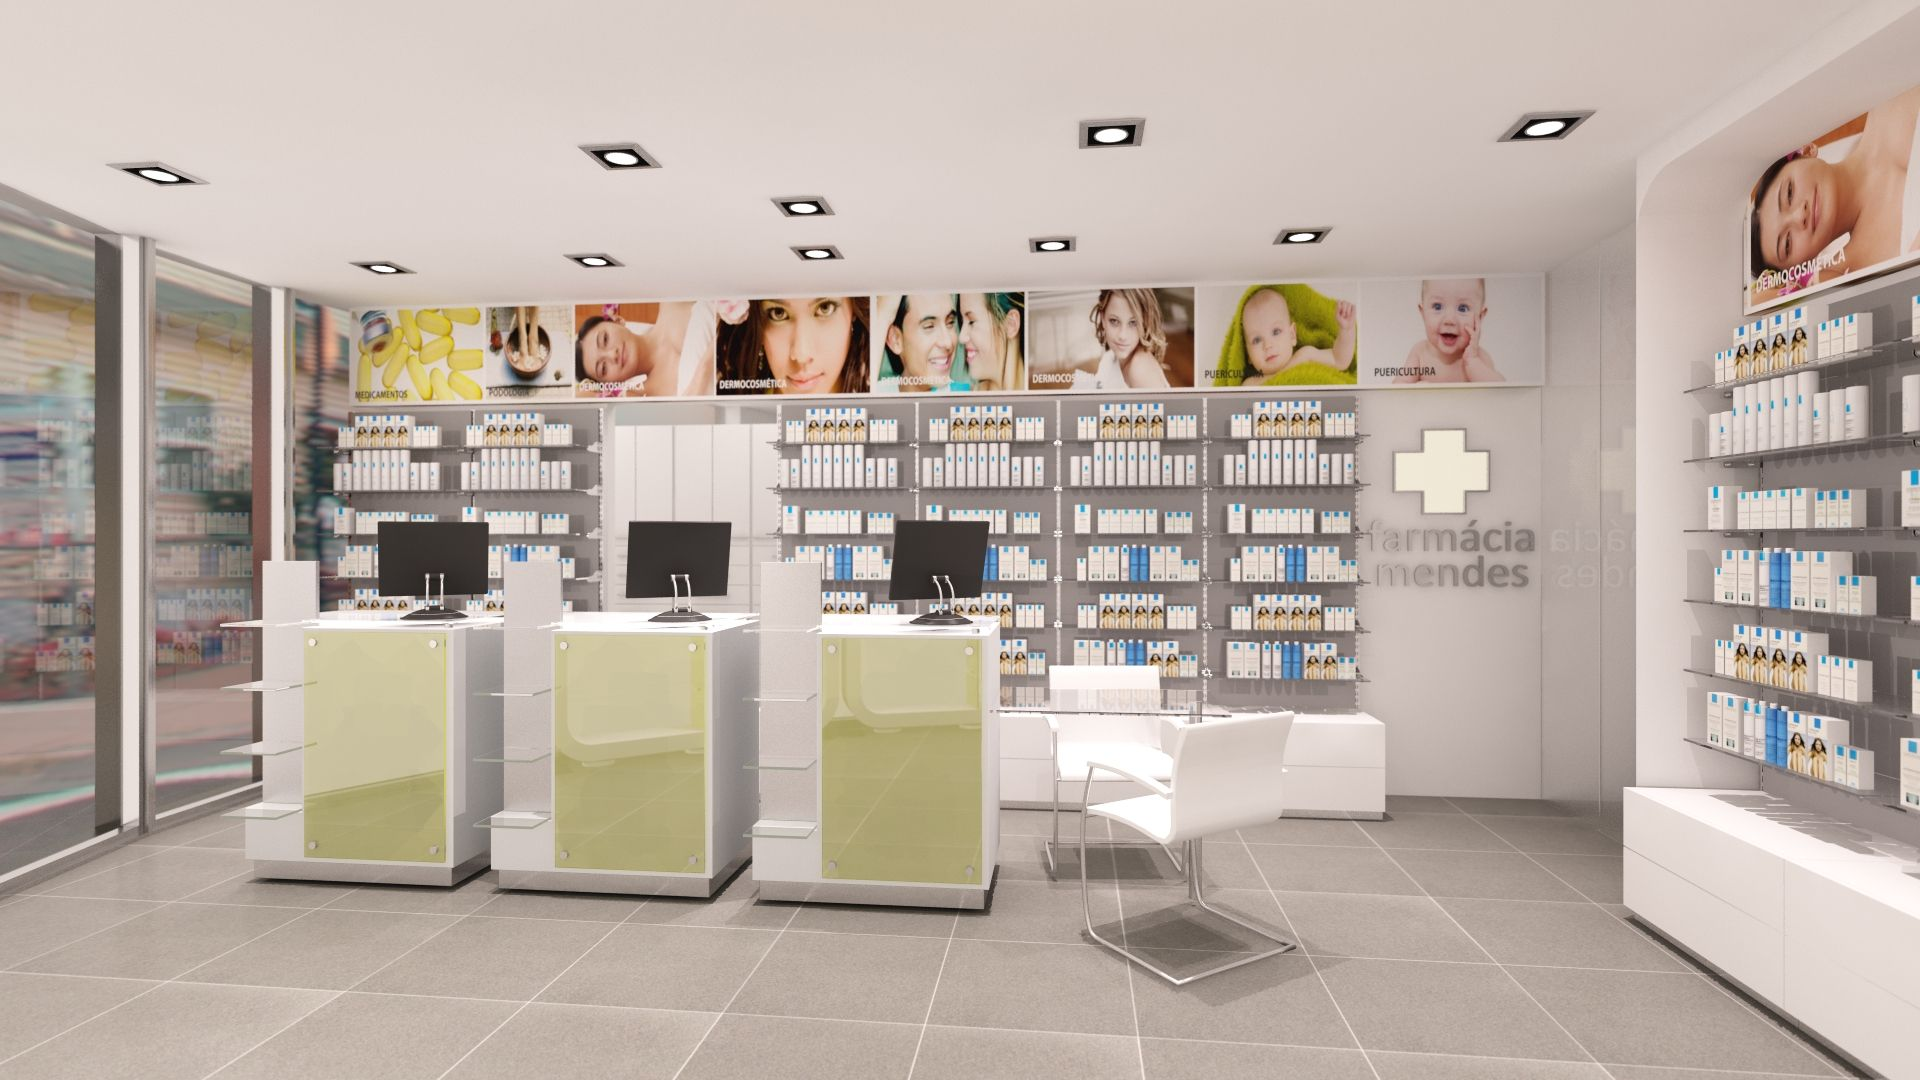 Farm Cia Mendes Pharmacy Design Ideas Pinterest